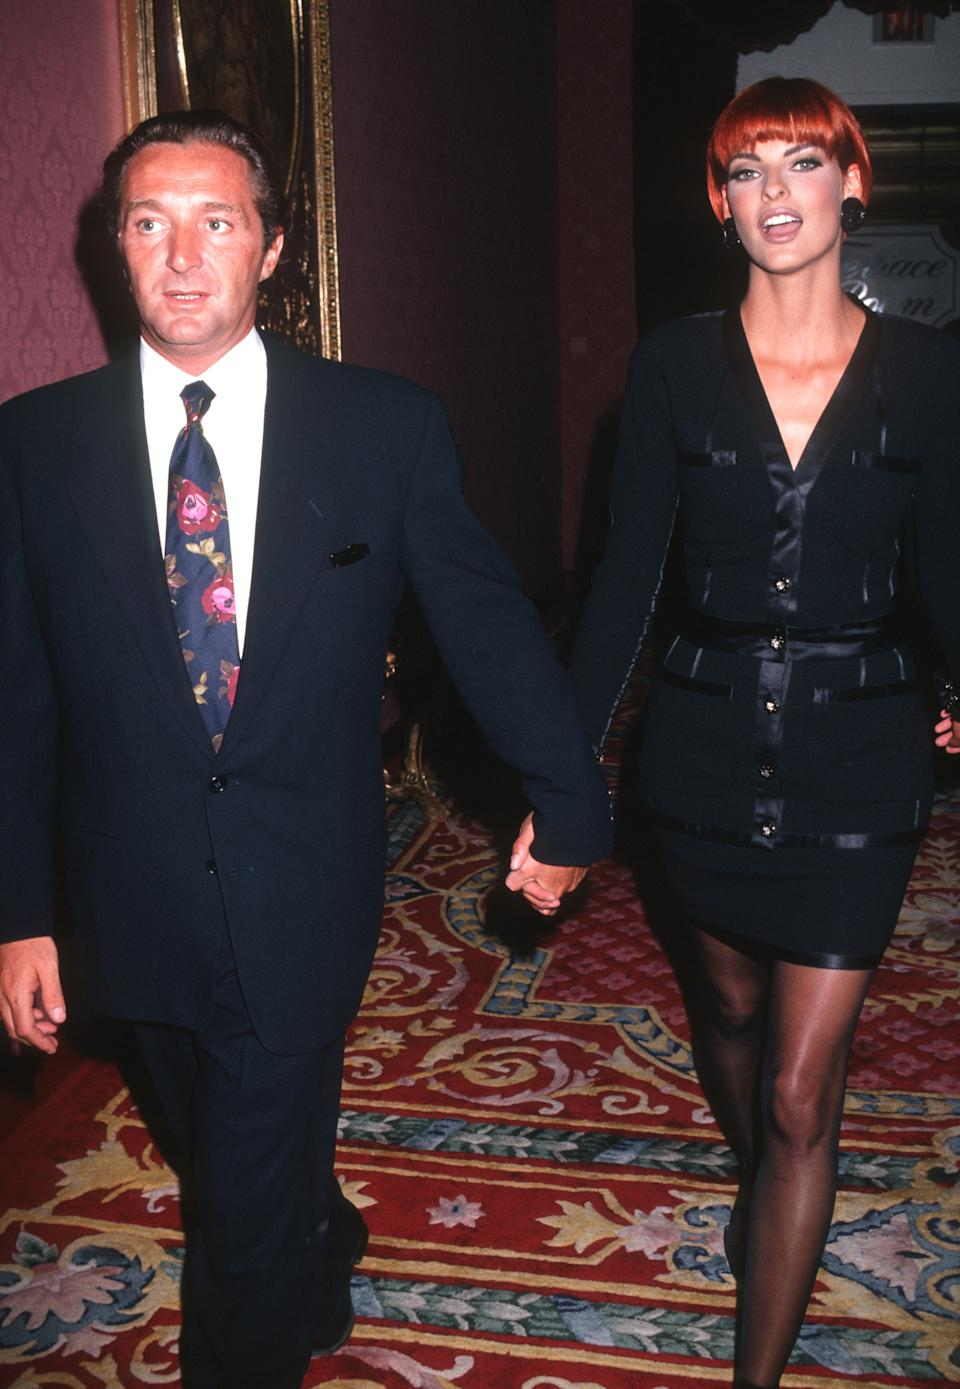 Gerald Marie and Linda Evangelista (Photo by Ron Galella, Ltd./Ron Galella Collection via Getty Images)